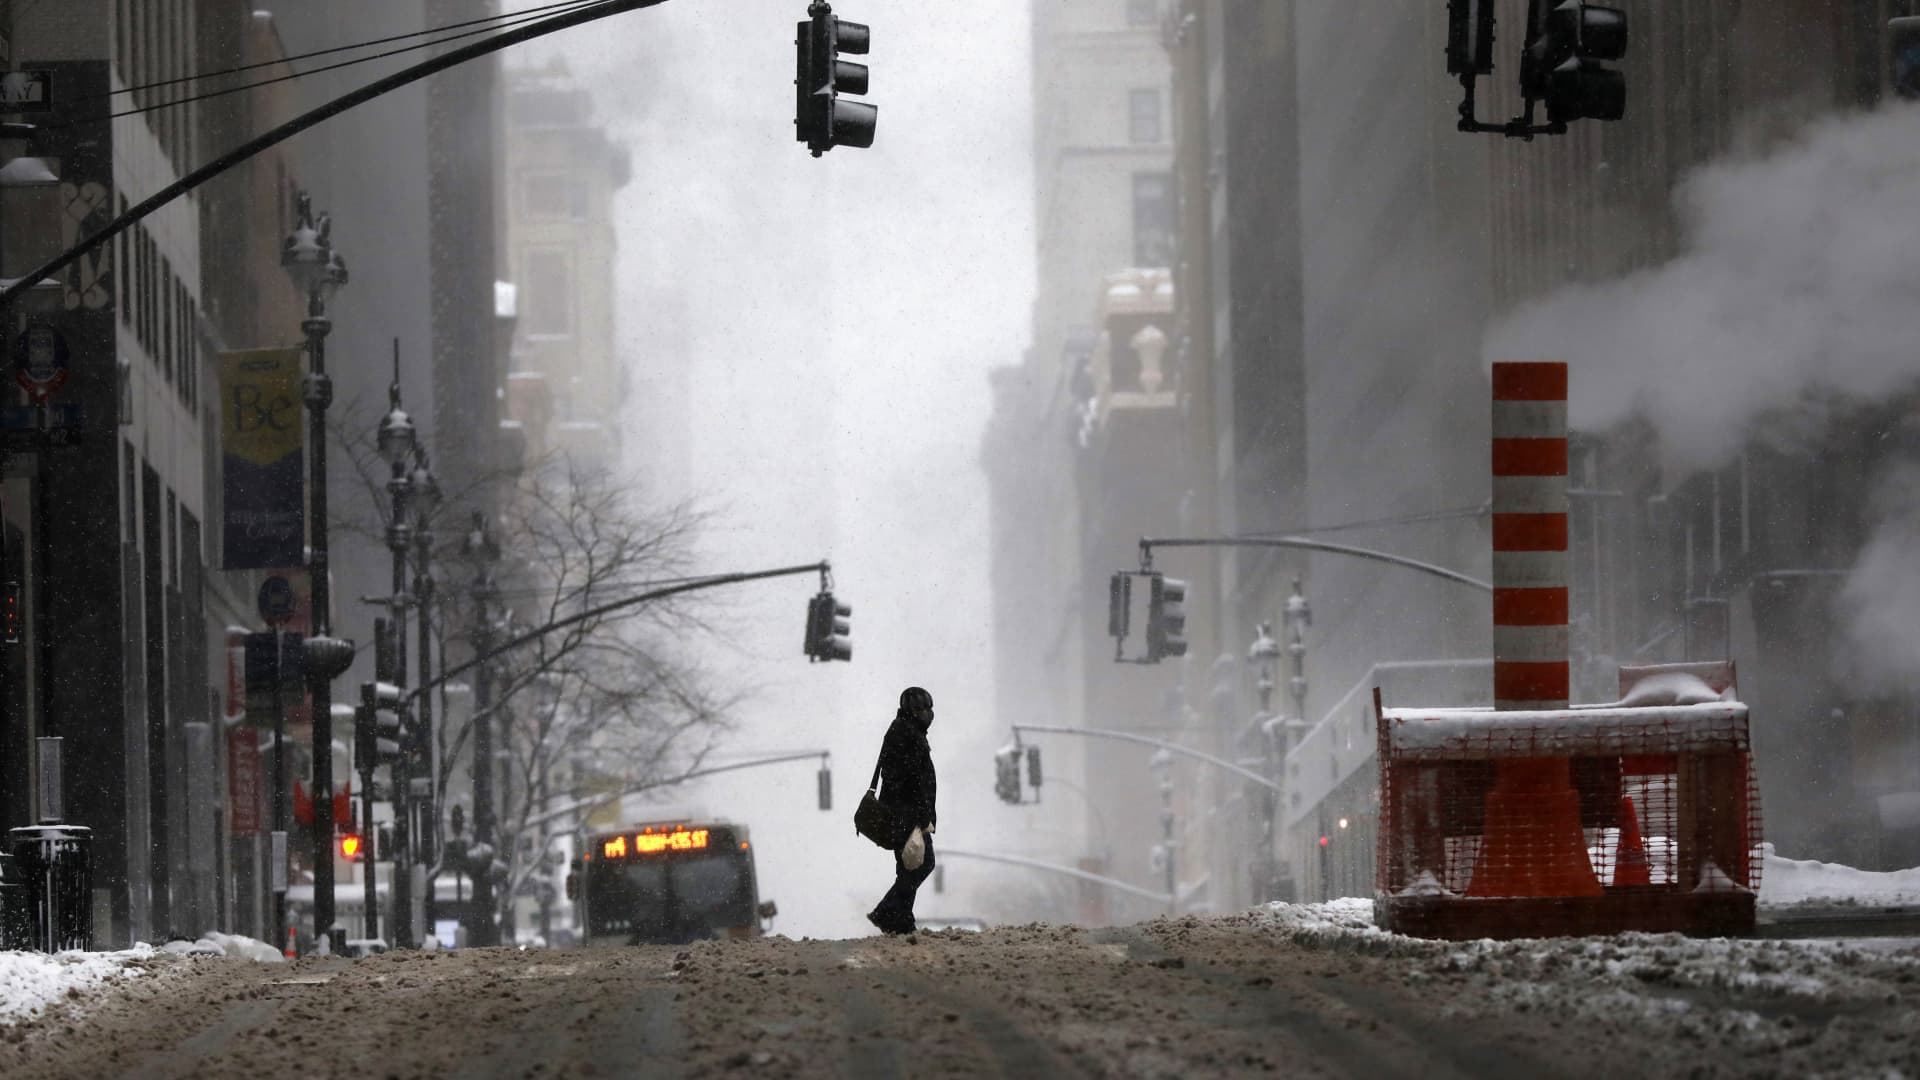 People walk through the snow in Manhattan on February 01, 2021 in New York City.